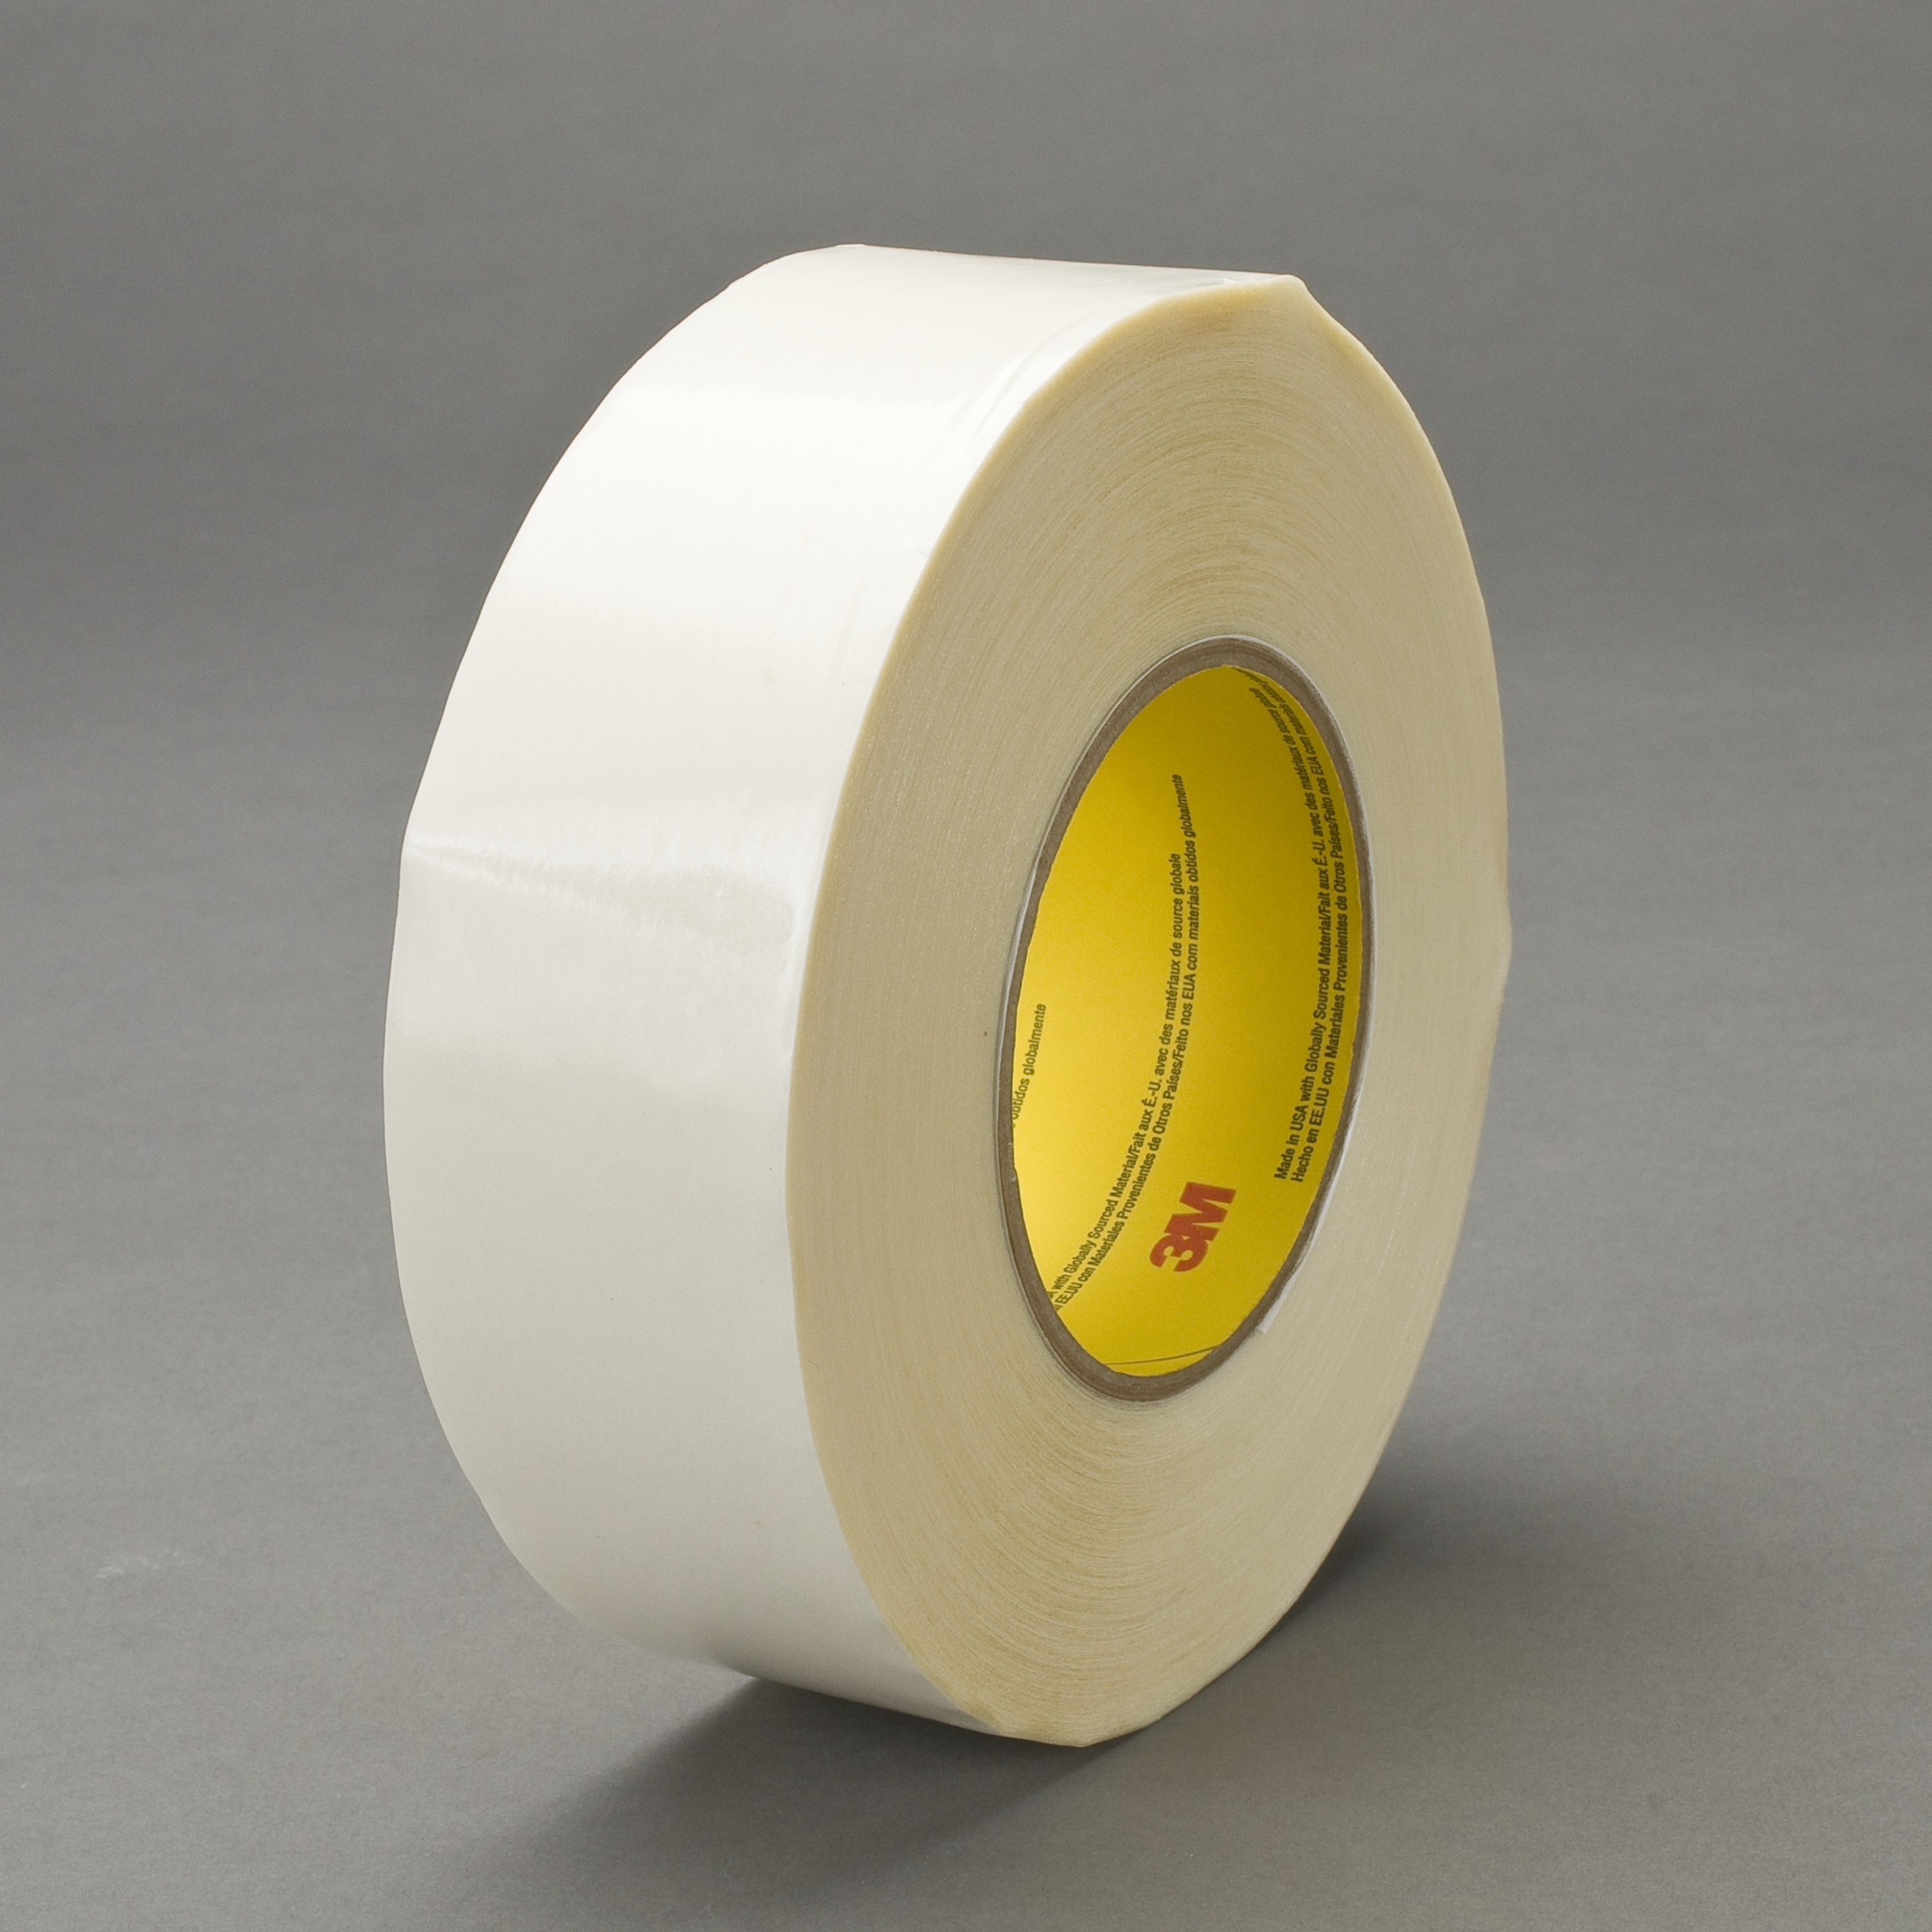 3M™ Double Coated Tape 9741, Clear, 72 mm x 55 m, 6.5 mil, 16 rolls per case